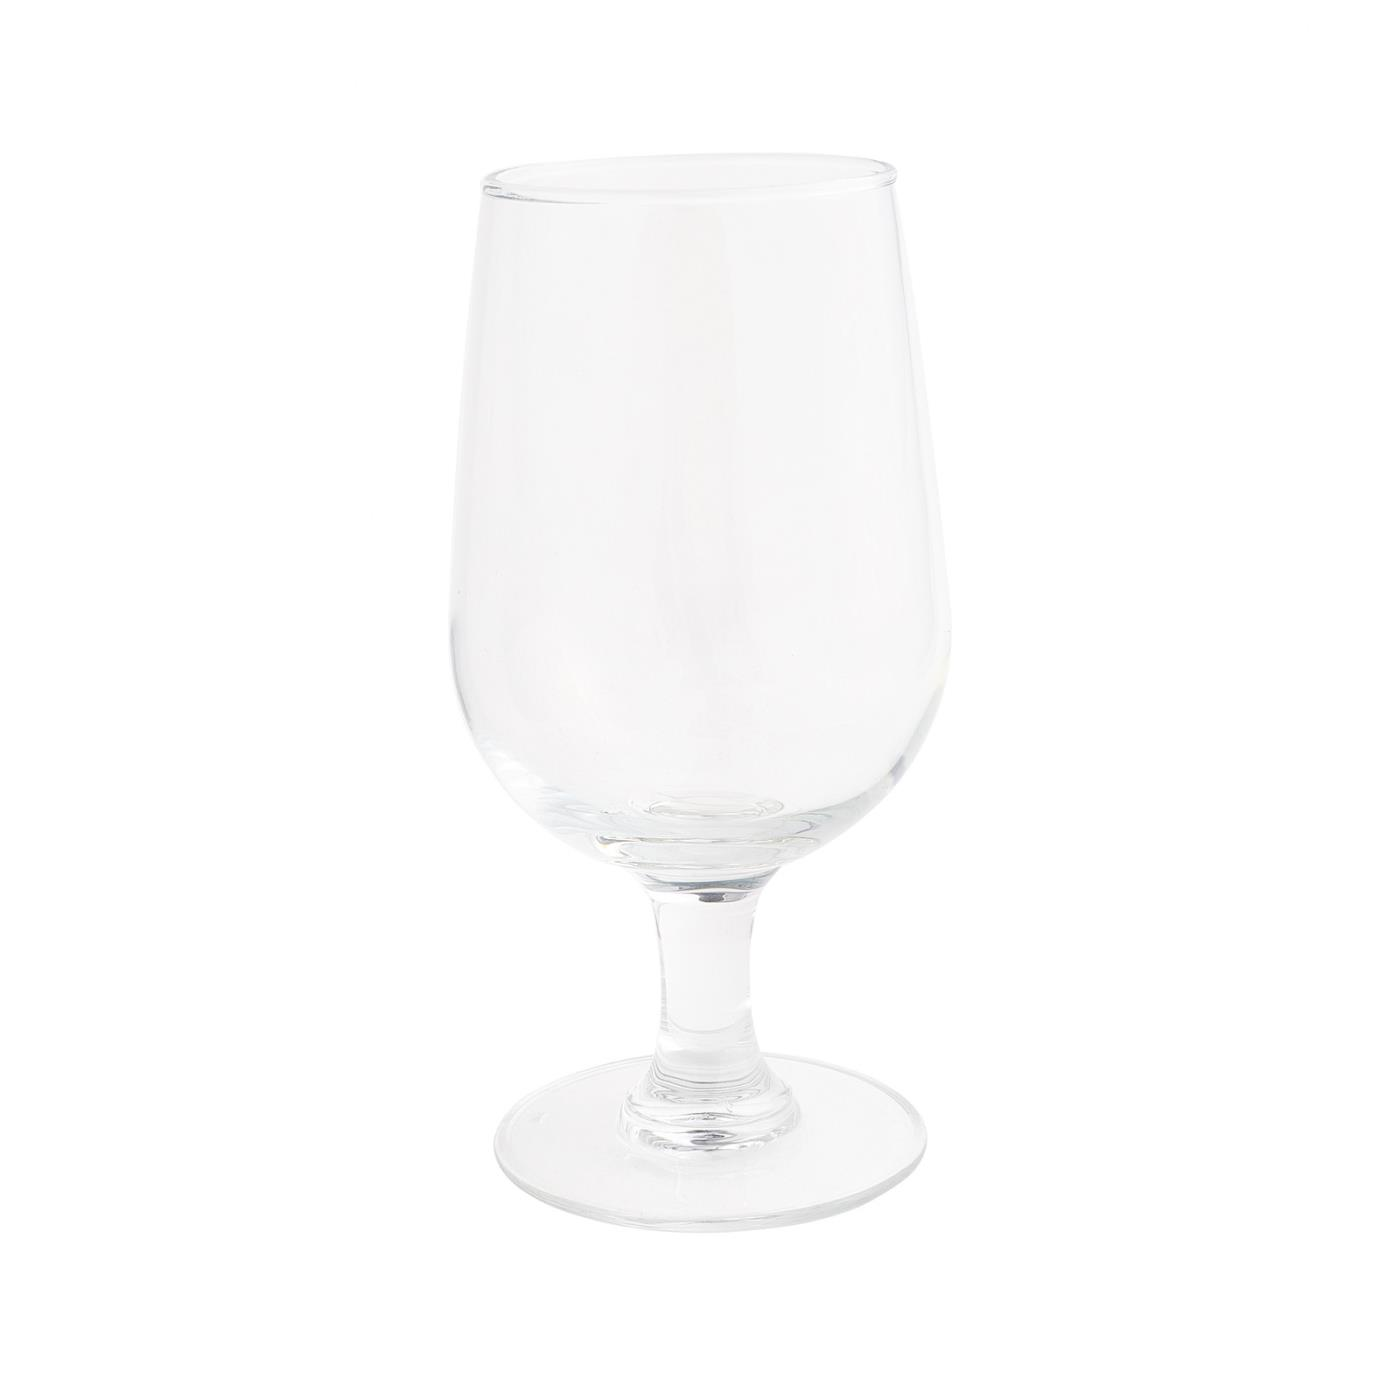 Standard AP Glass - Short Stem 11 oz